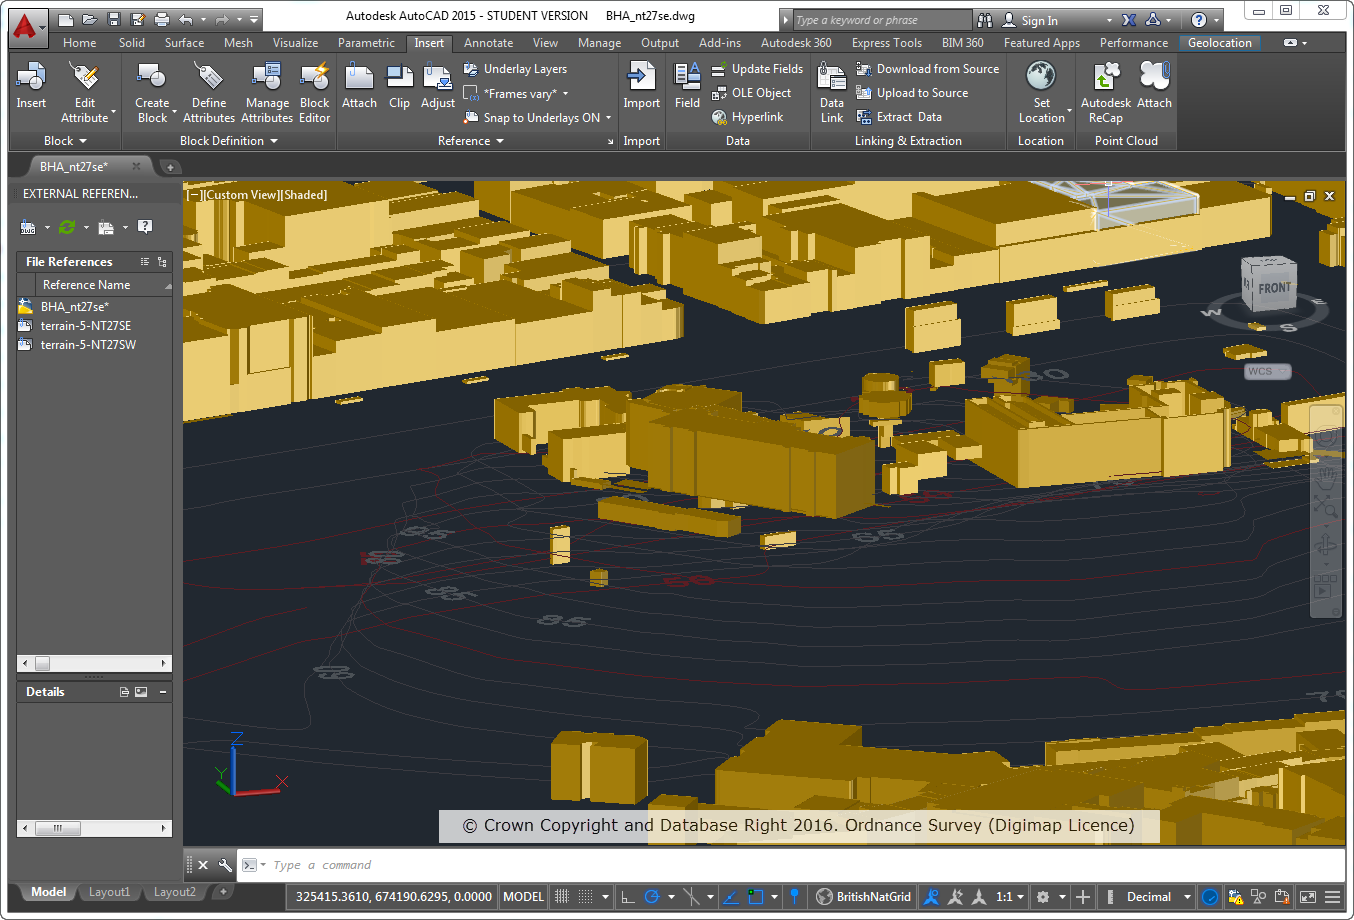 OS MasterMap Topography Layer Building Height Attribute data on top of OS Terrain 5 Contours